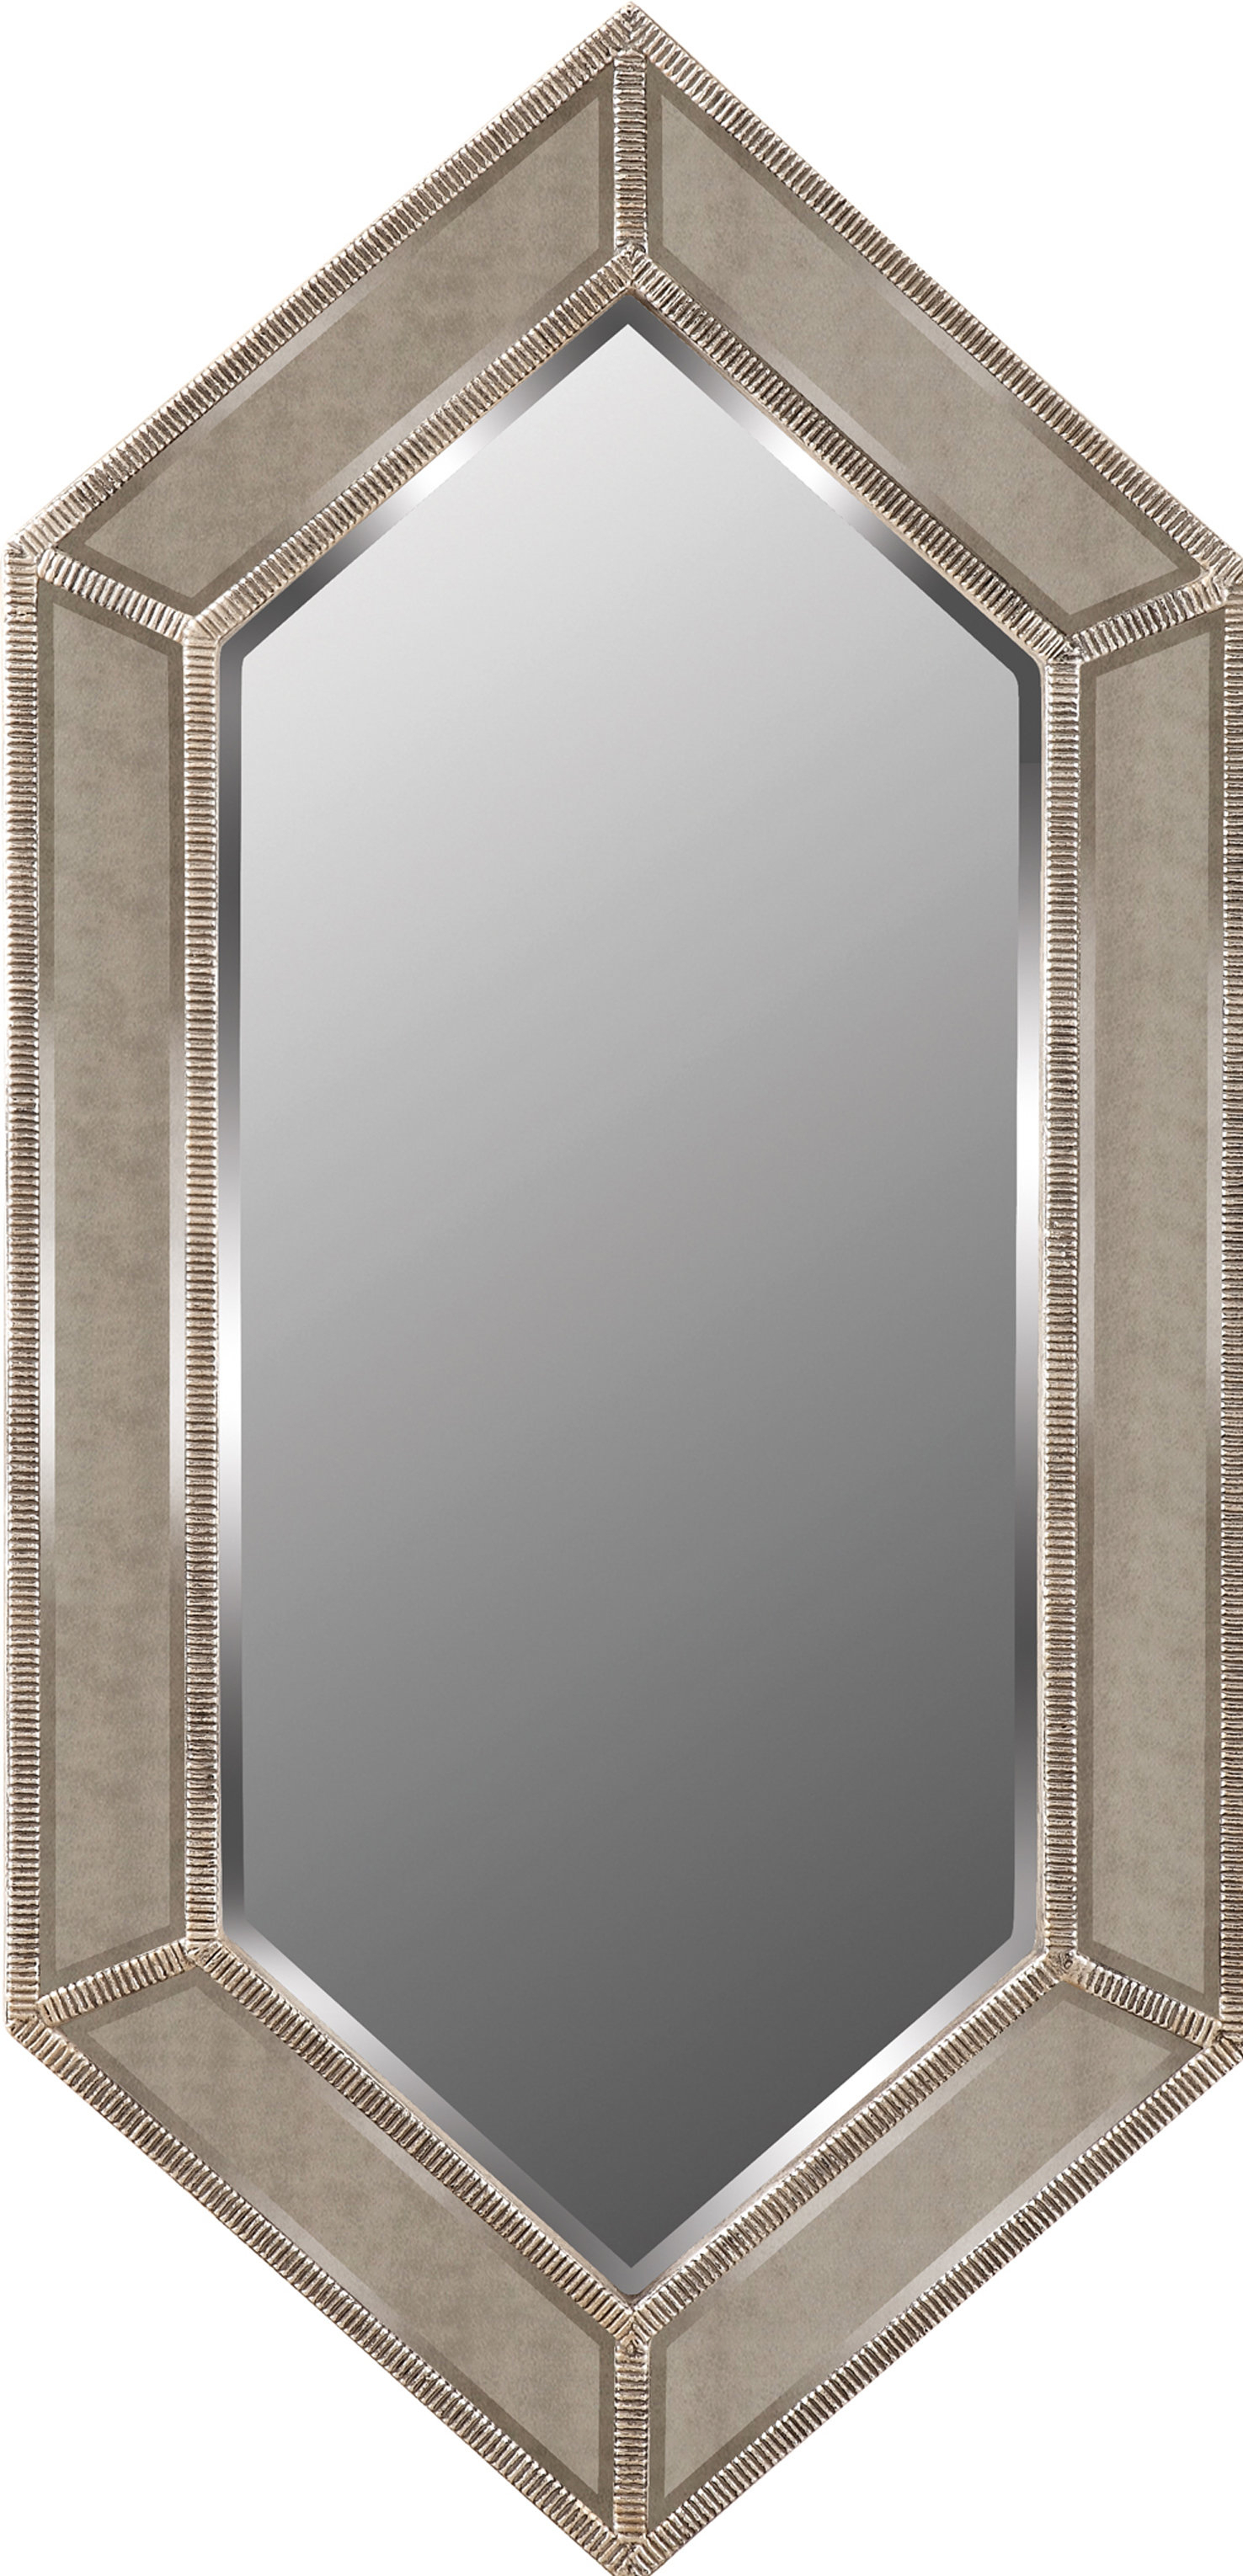 Galaxy Home Decoration Beaded Milton Accent Wall Mirror Within Beaded Accent Wall Mirrors (View 13 of 30)